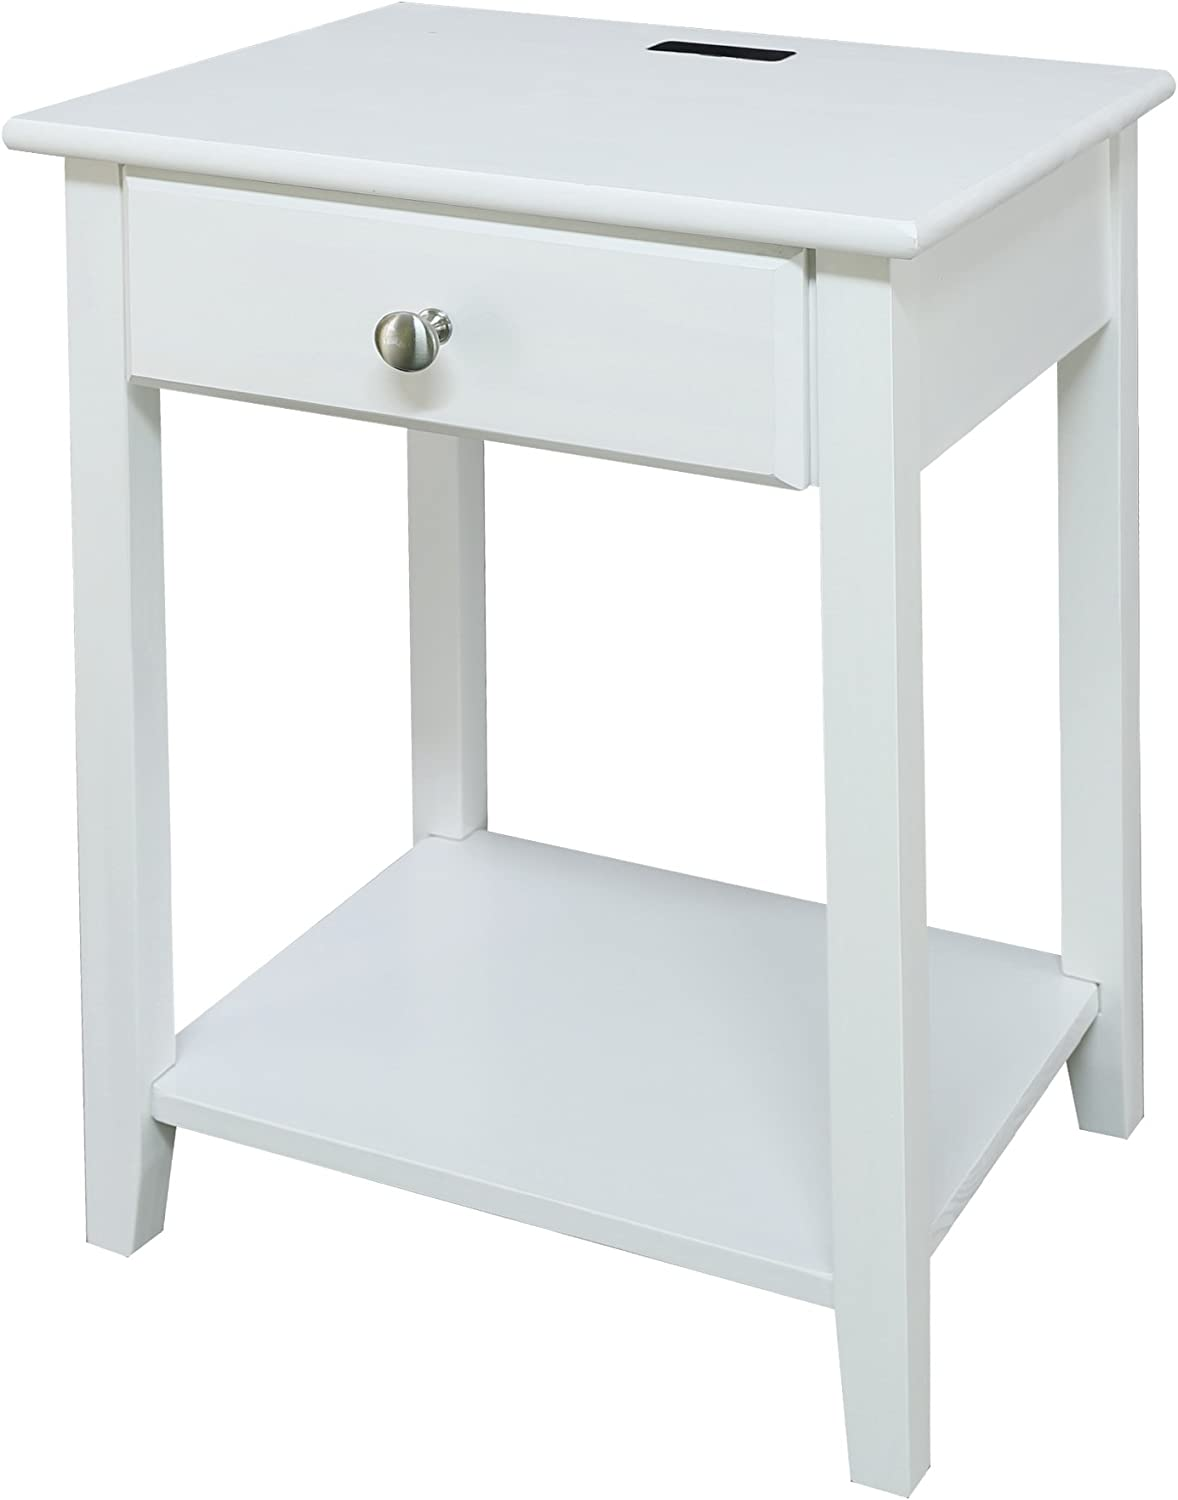 Casual Home USB Port Nightstand, White (New)